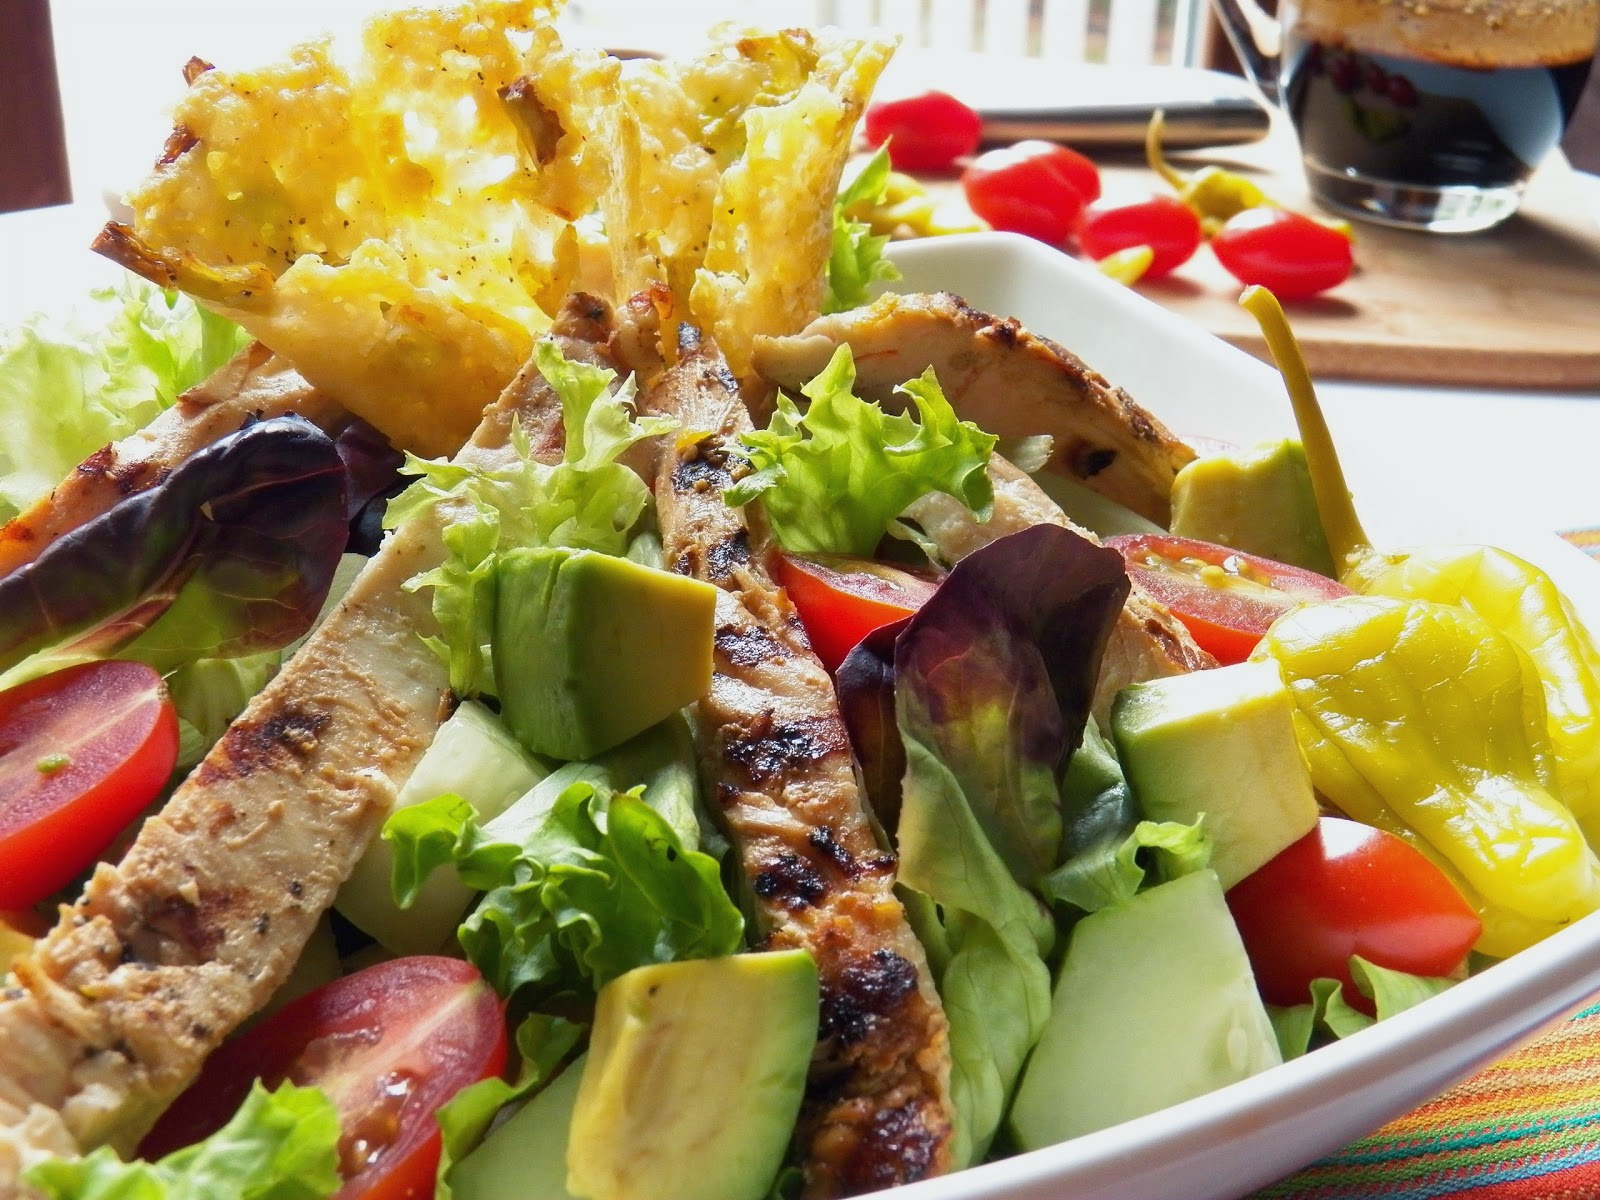 calories in grilled chicken salad with balsamic dressing